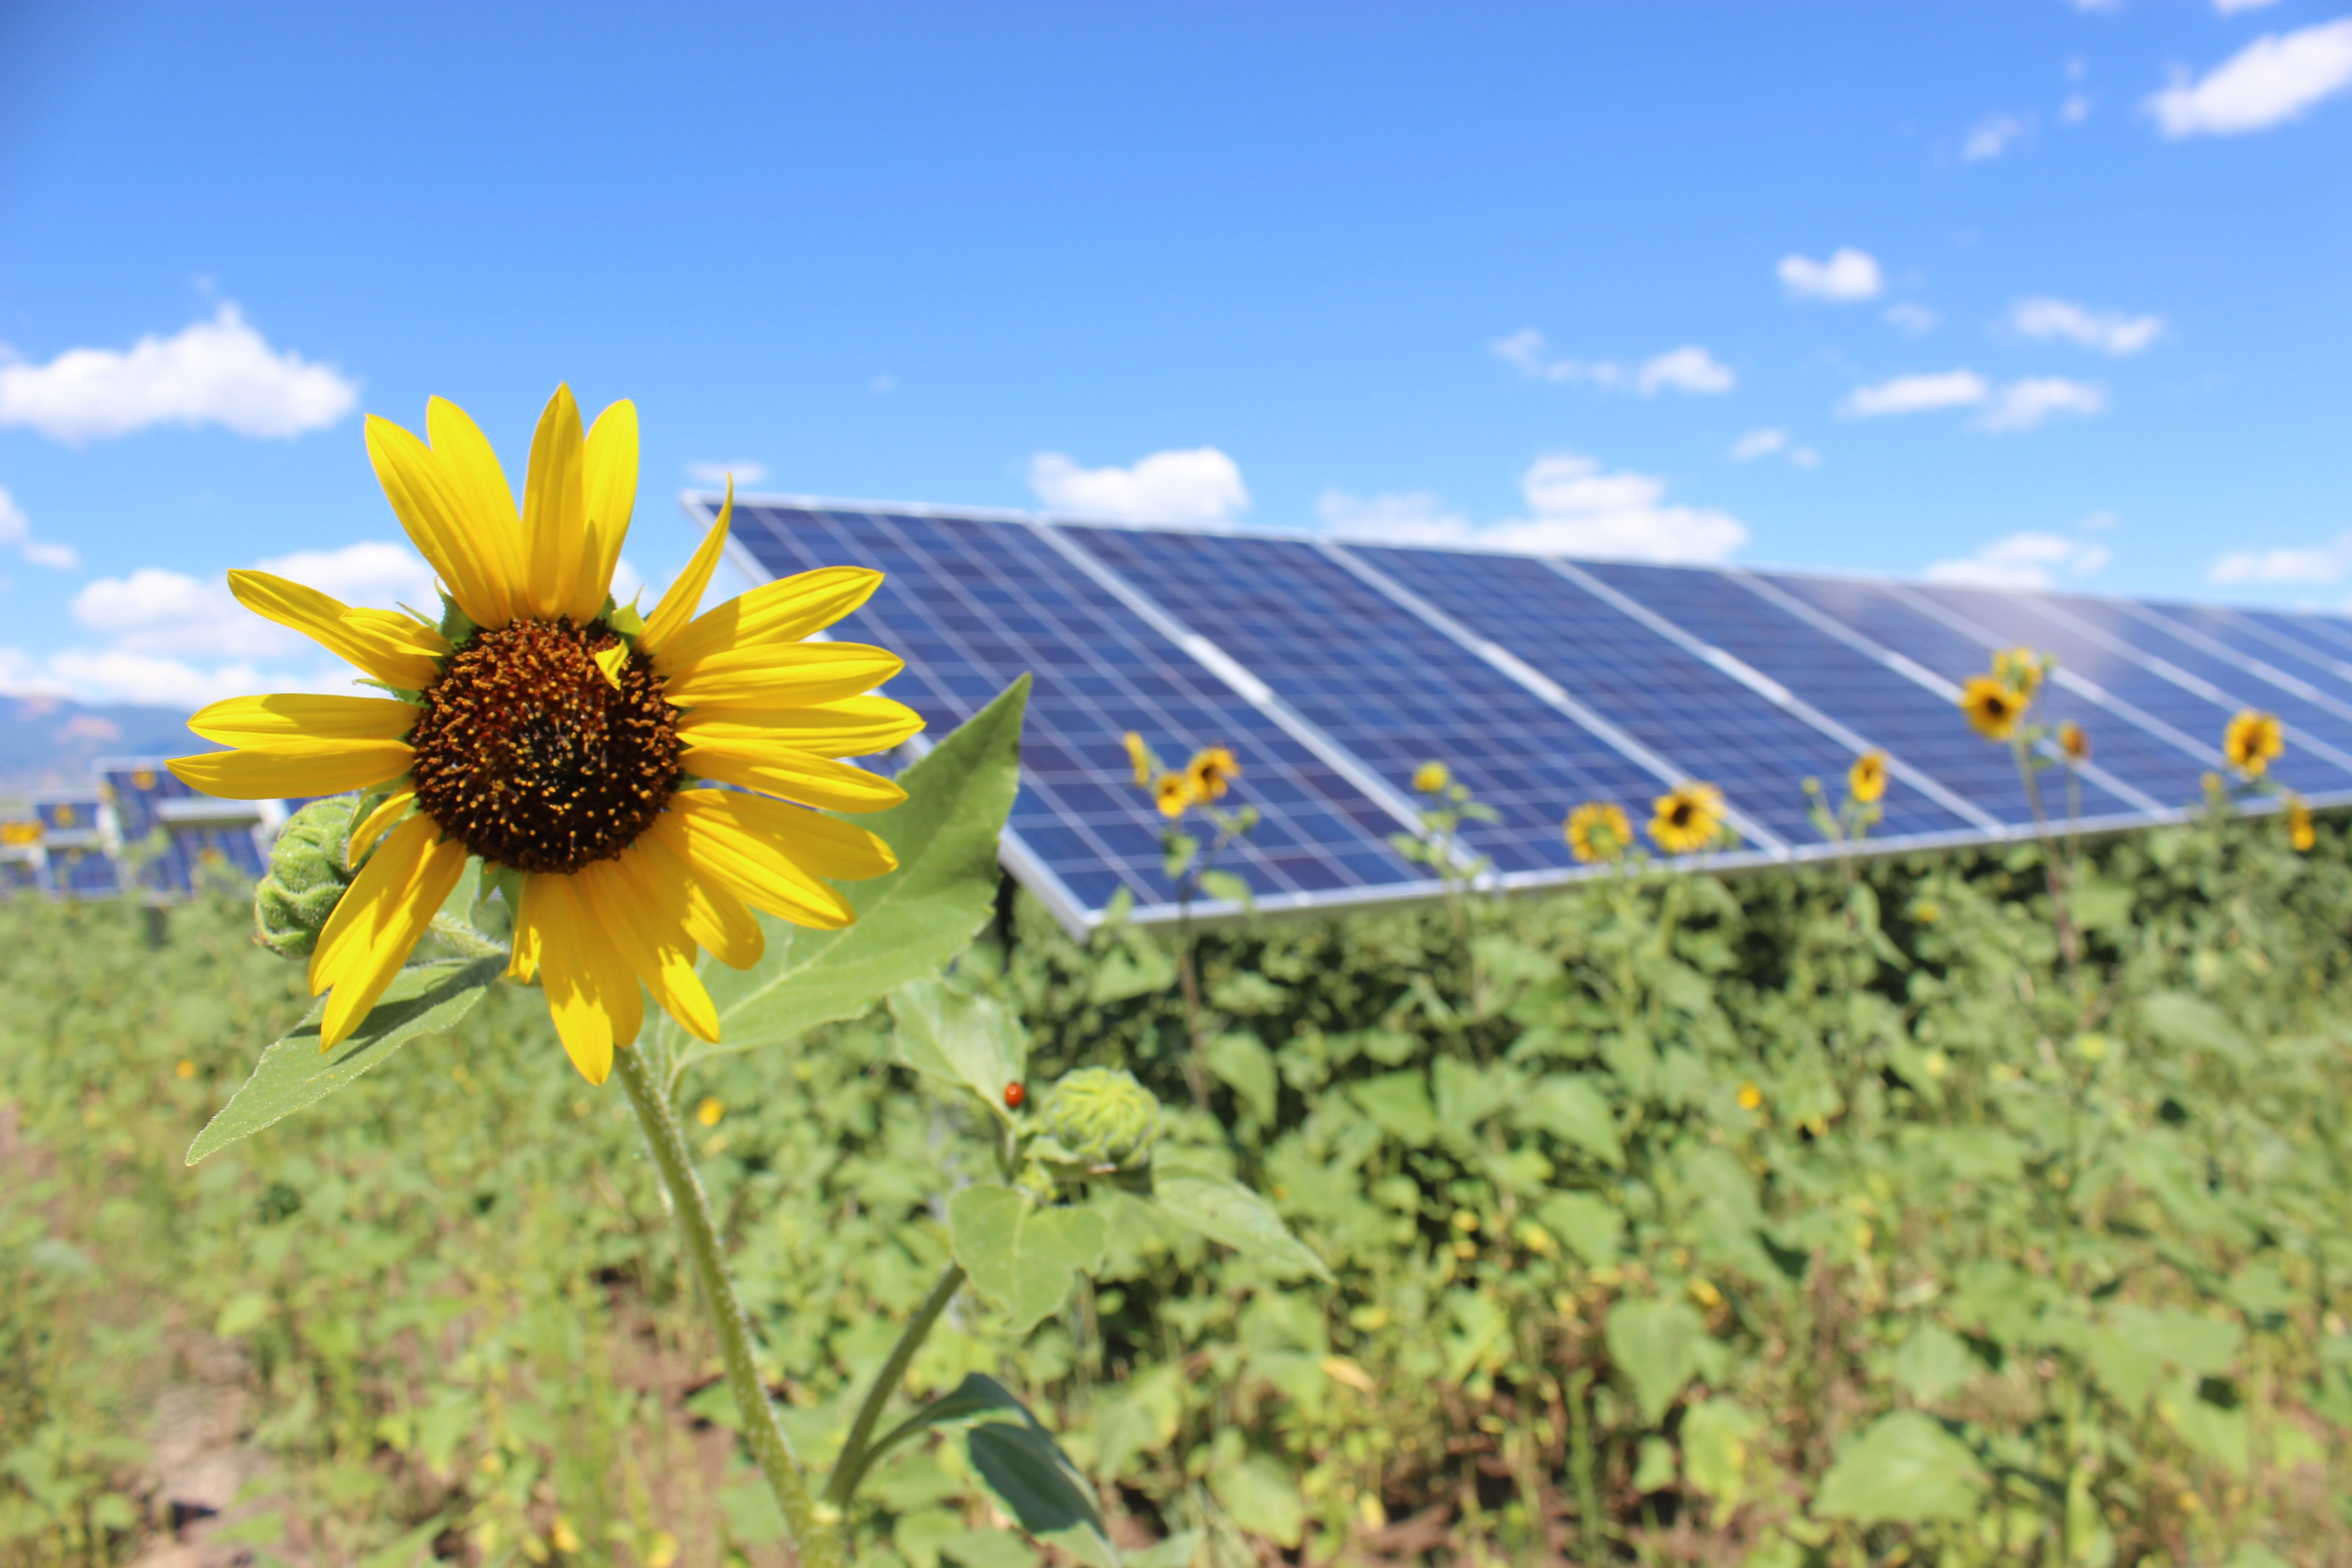 a row of solar panels and sunflowers